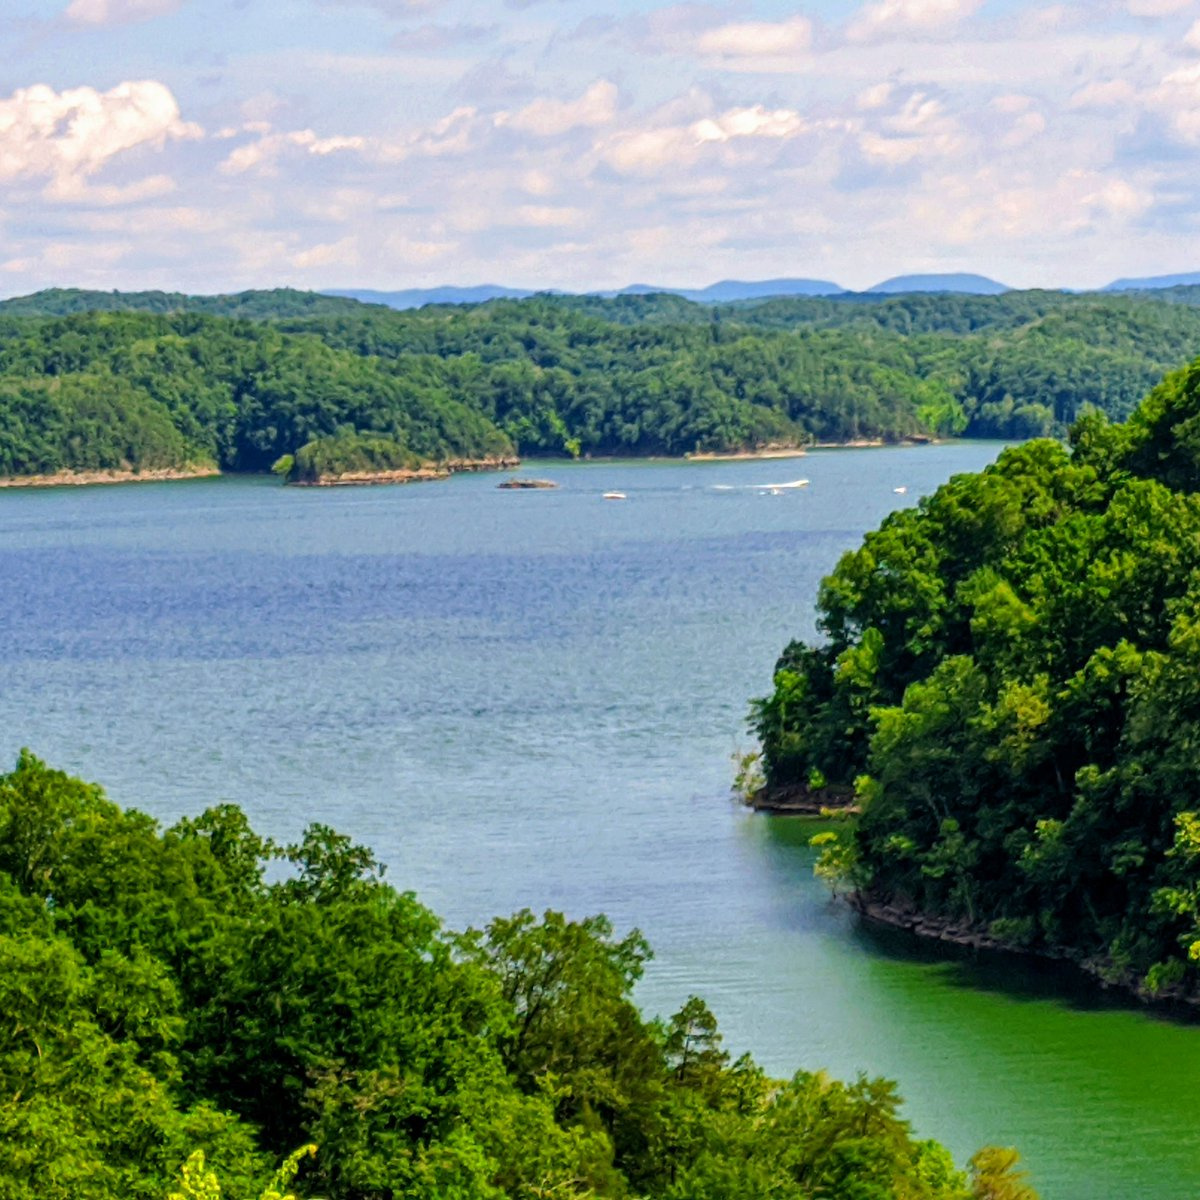 Beautiful Water on Lake Cumberland! View from the Lake Cumberland State Resort Park #lakecumberland #Kentucky #travelky #Travel #clearwater #cabins #hotels #bestvacations pic.twitter.com/hywXwDU8fM